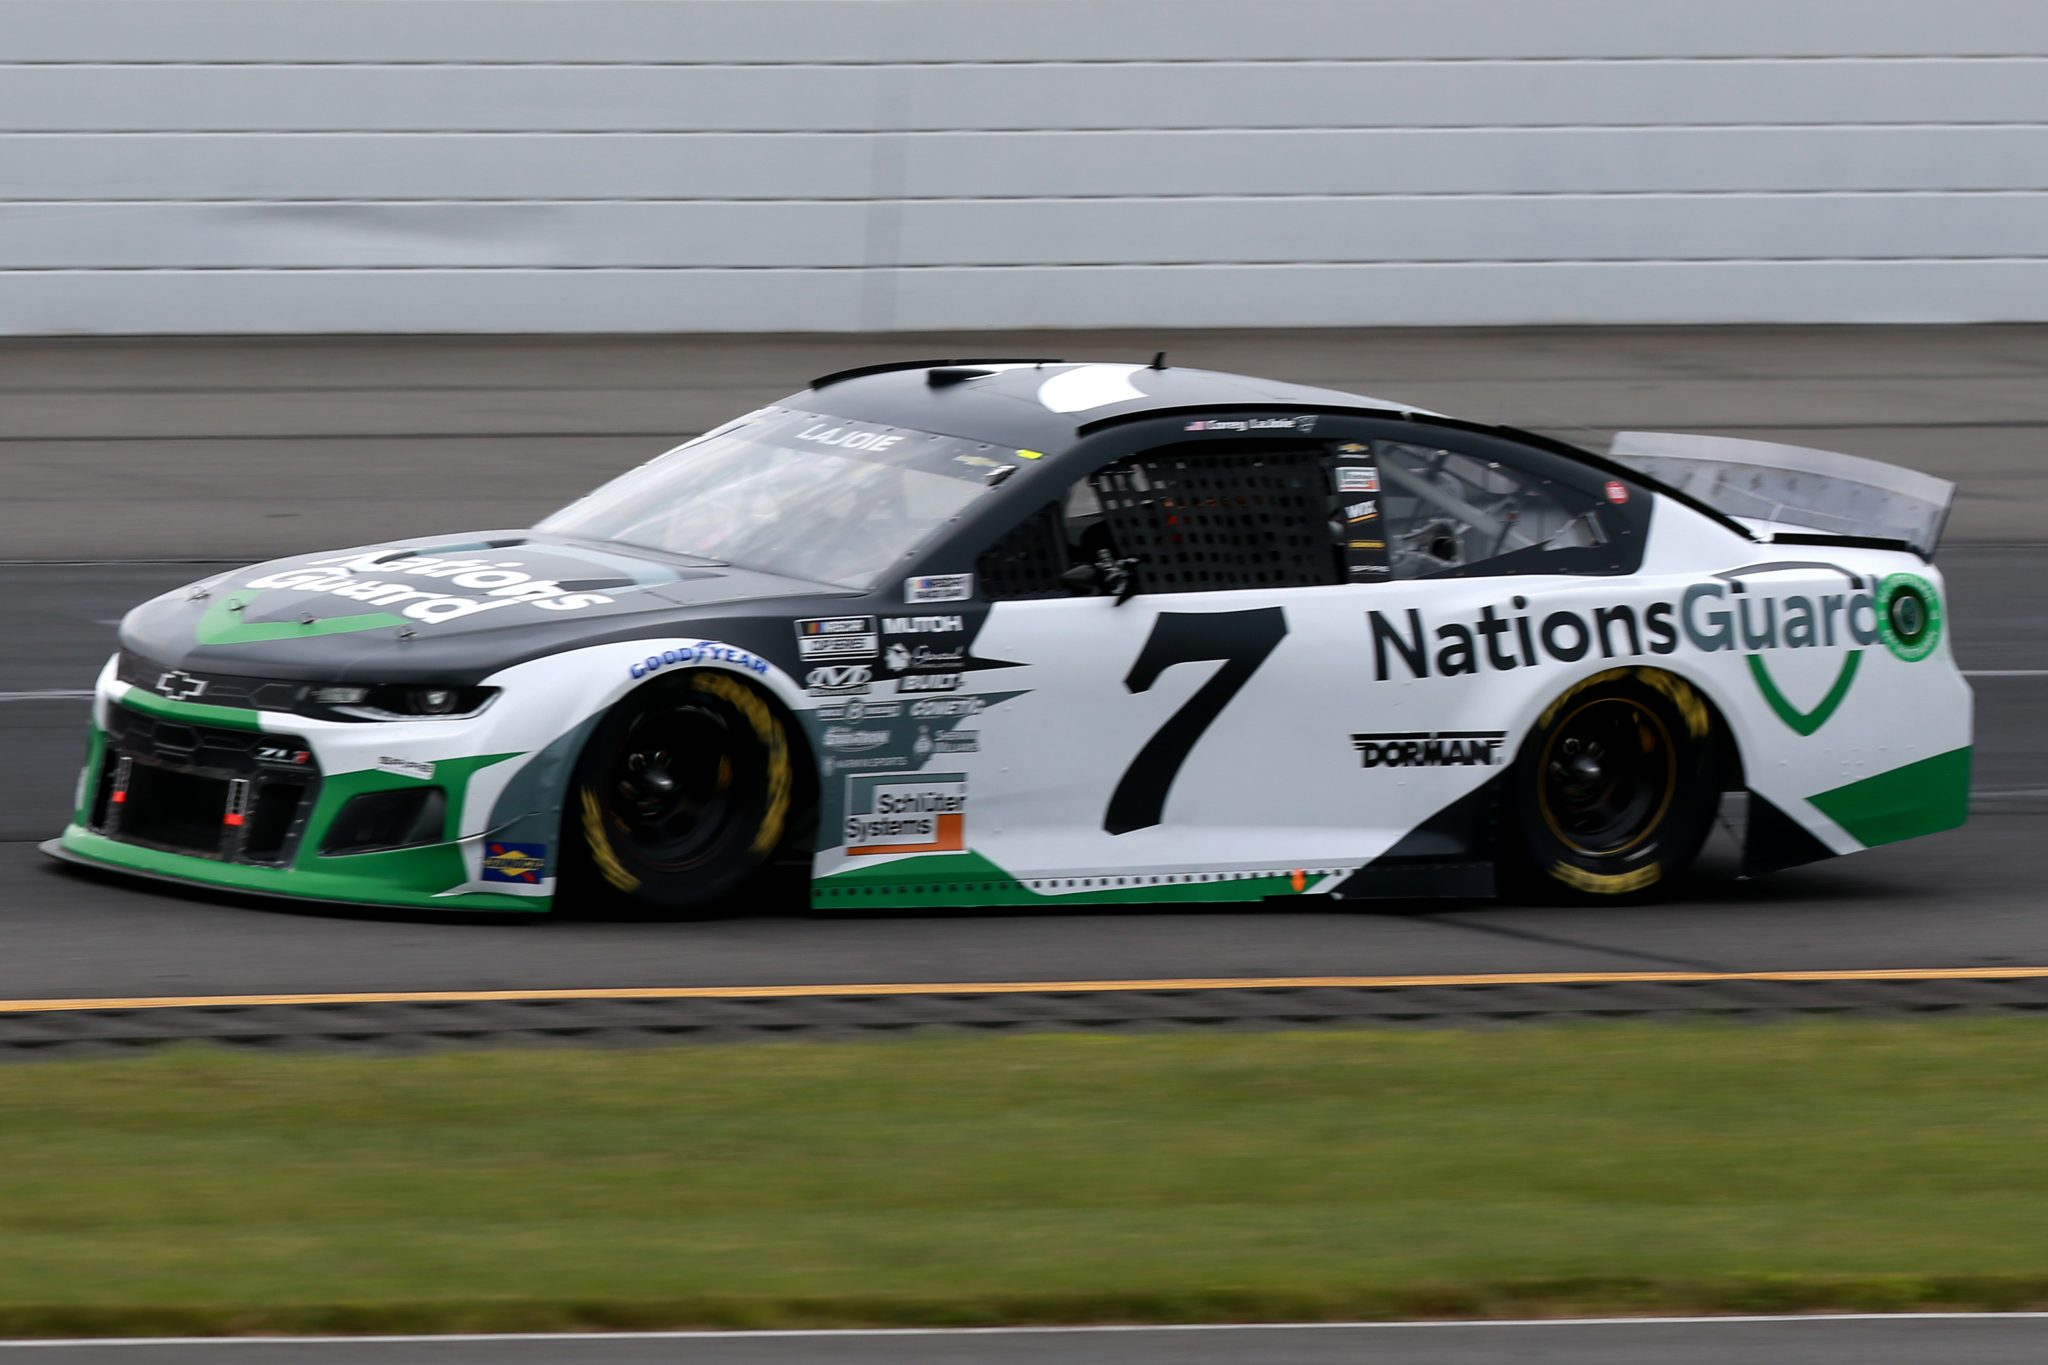 LONG POND, PENNSYLVANIA - JUNE 26: Corey LaJoie, driver of the #7 Nations Guard Chevrolet, drives during the NASCAR Cup Series Pocono Organics CBD 325 at Pocono Raceway on June 26, 2021 in Long Pond, Pennsylvania. (Photo by Sean Gardner/Getty Images)   Getty Images